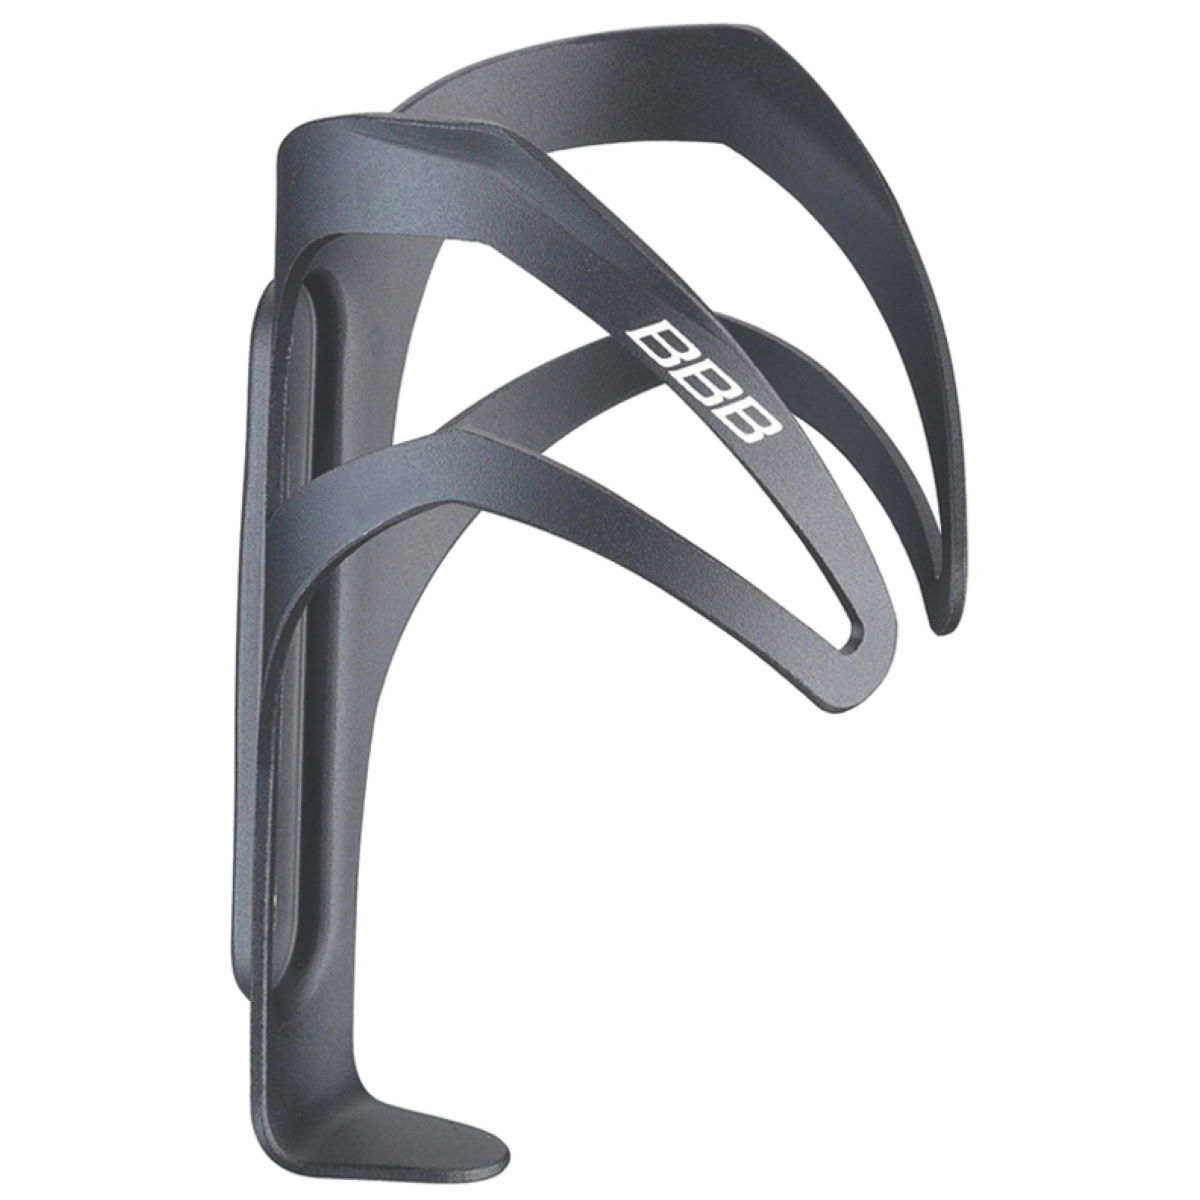 Porte-bidon BBB SpeedCage BBC-31 - One Size Black Anodised